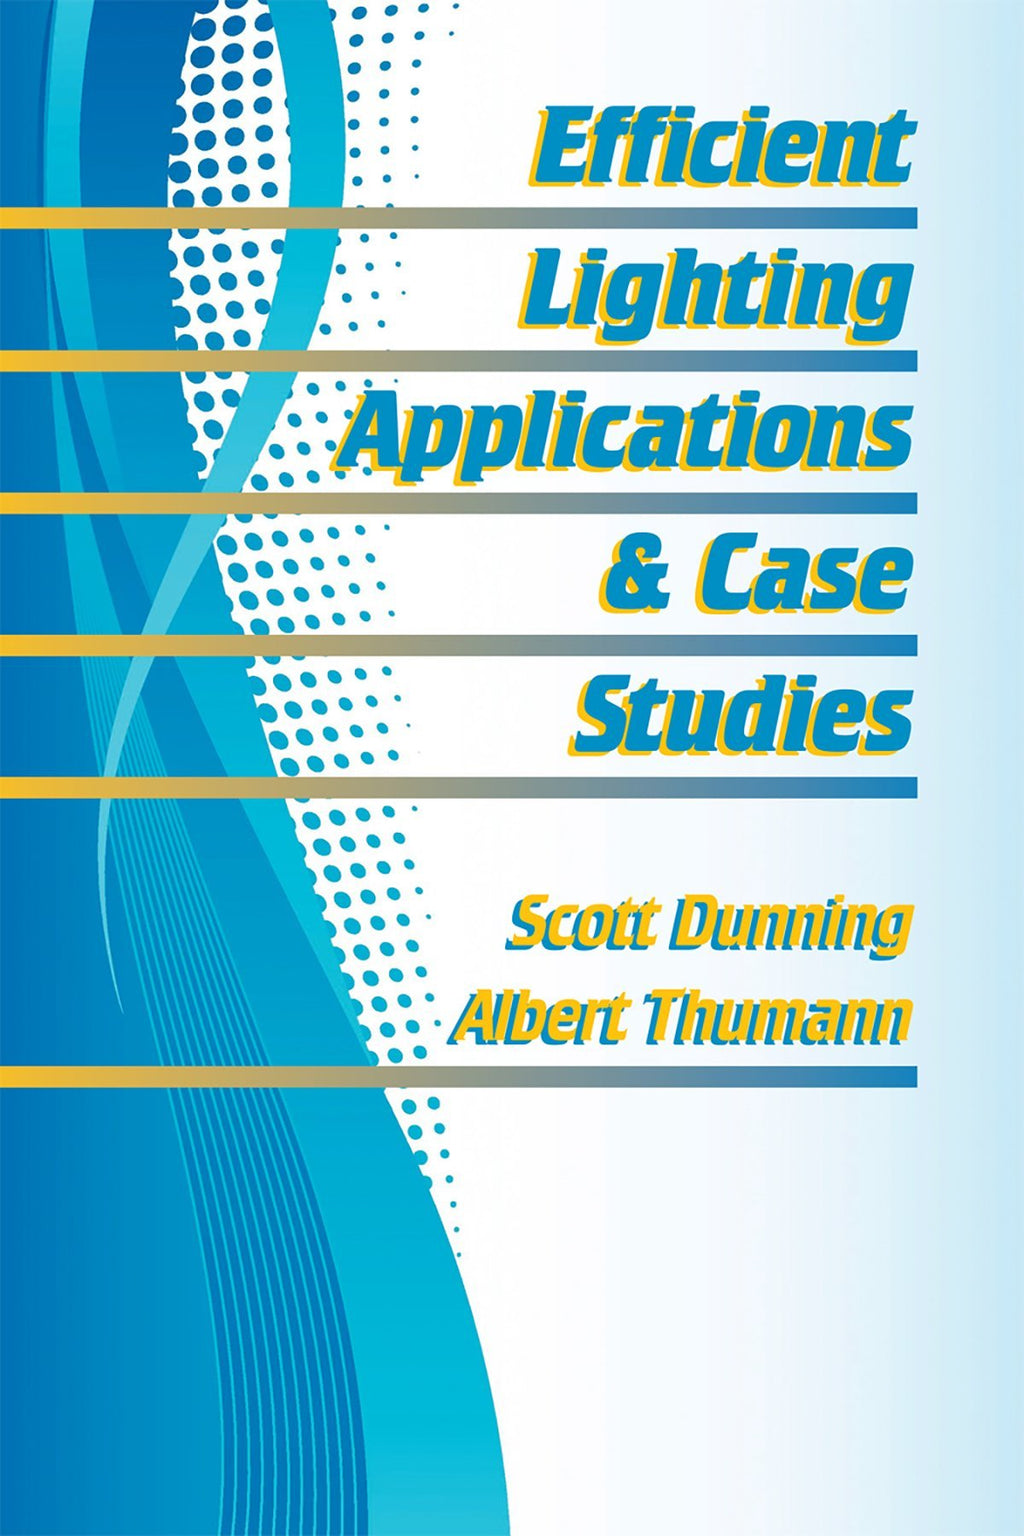 Efficient Lighting Applications & Case Studies - AEE Programs